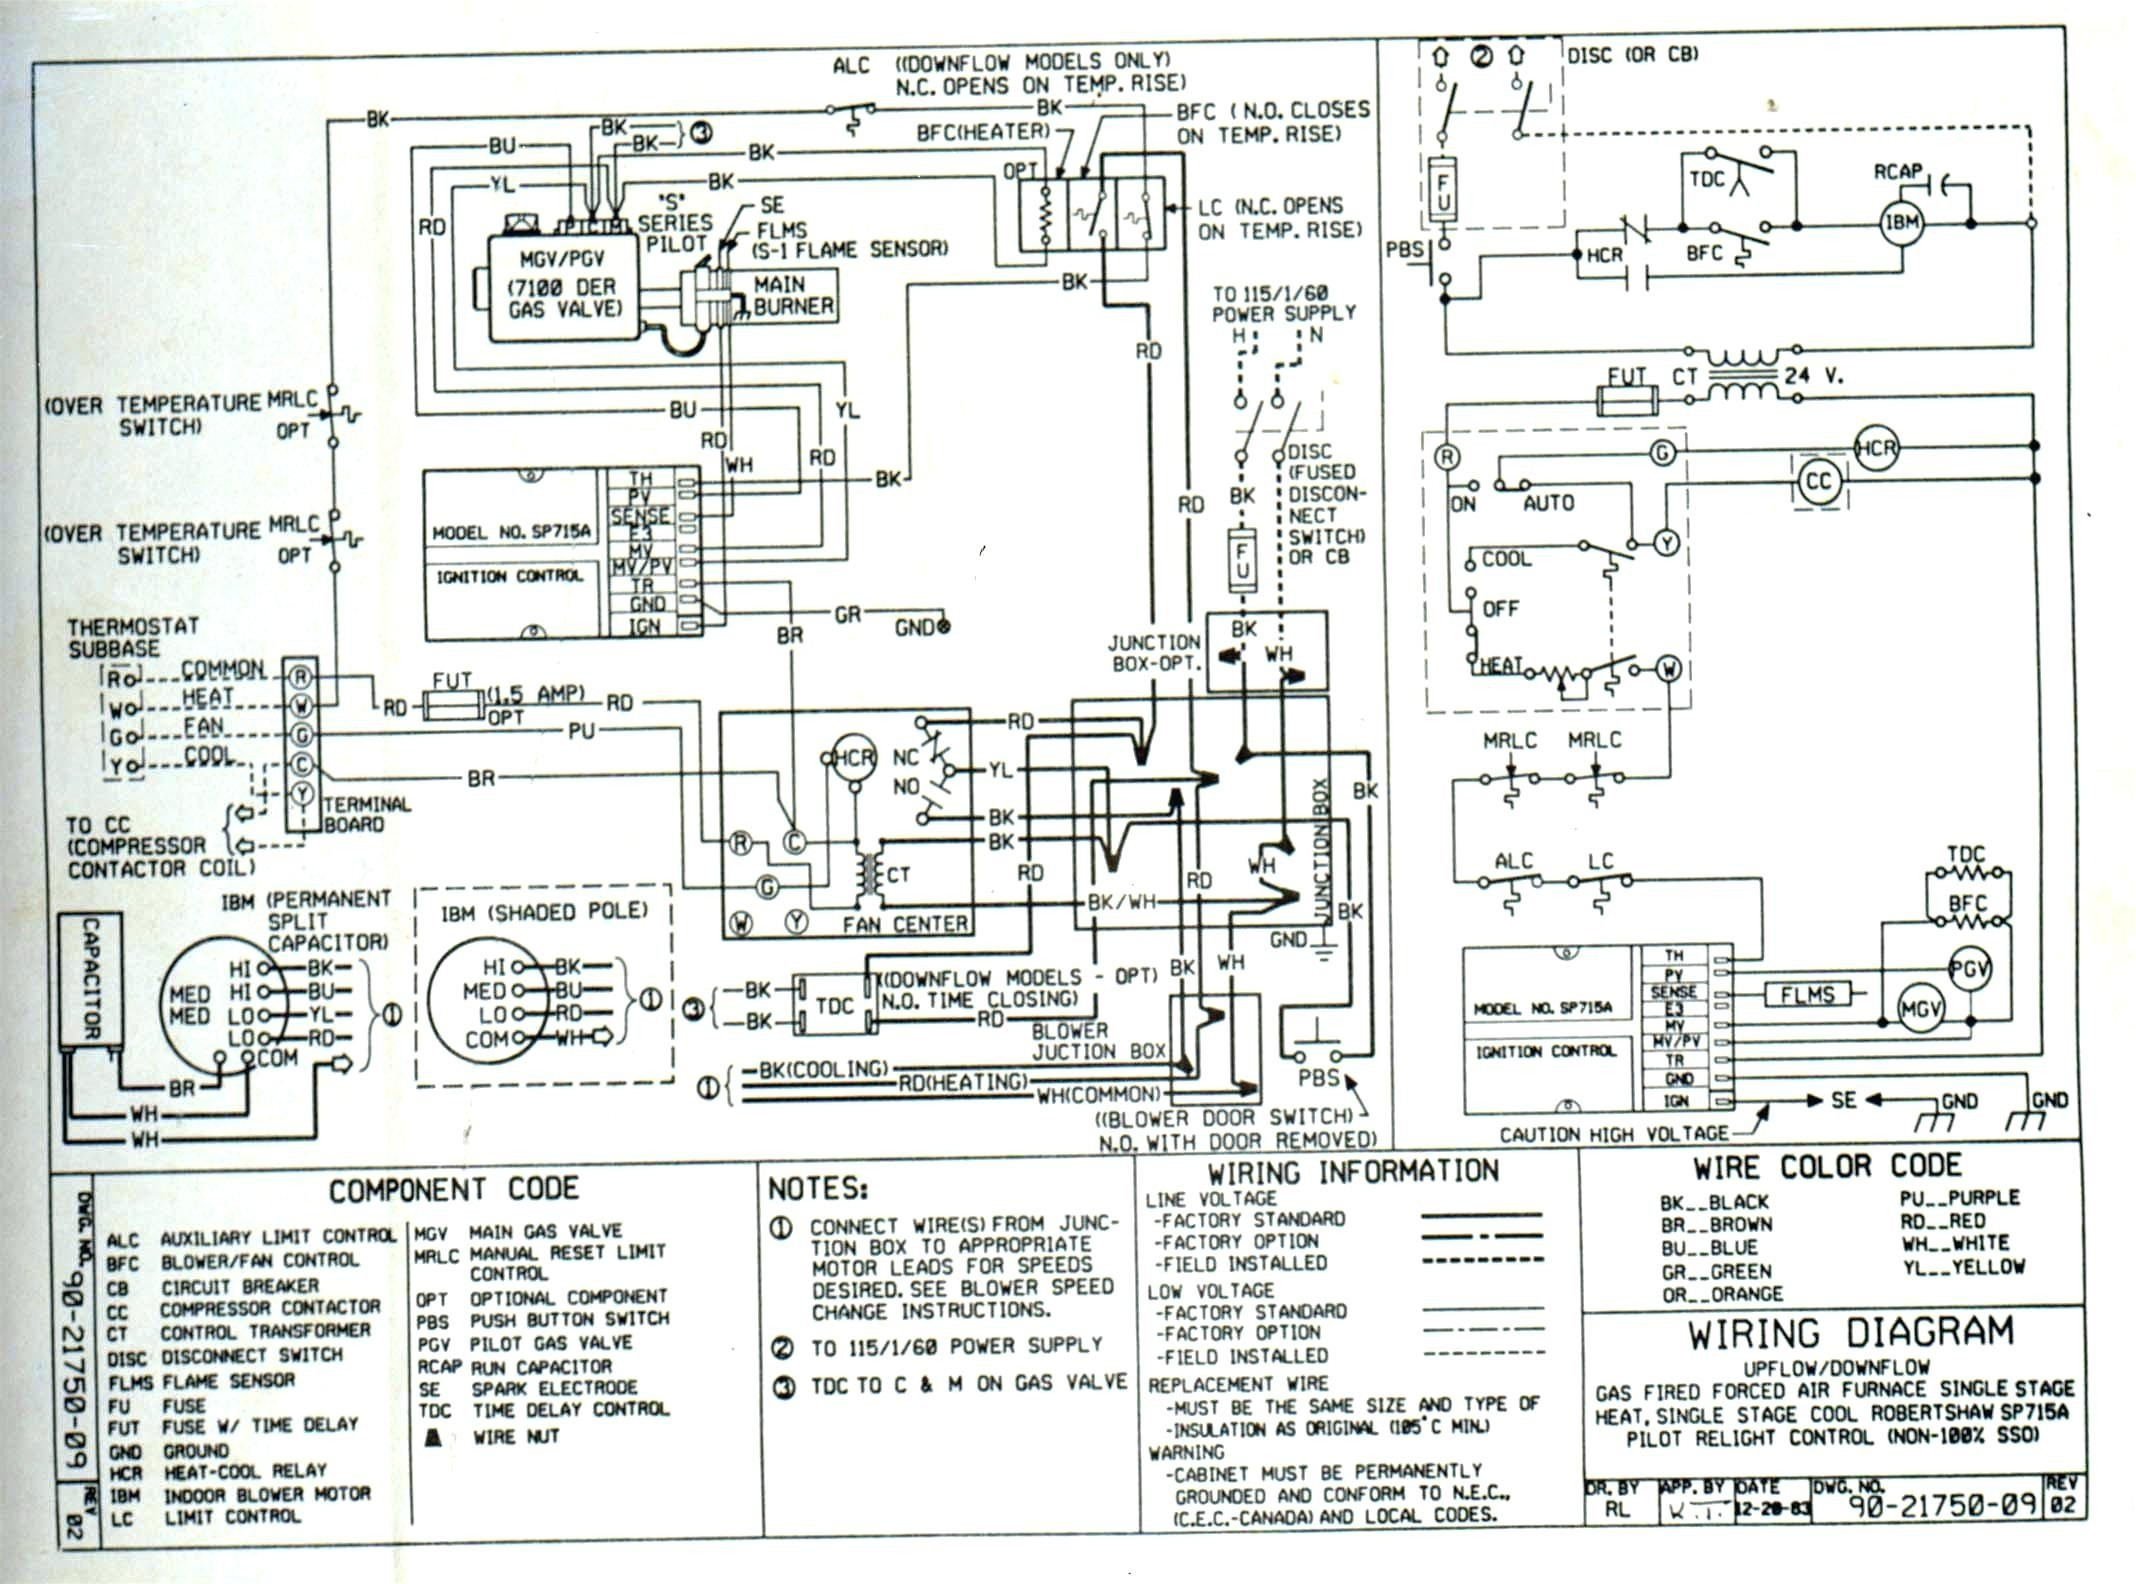 trane rooftop unit wiring diagram - trane wiring diagrams model xr80 simple  electronic circuits u2022 rh